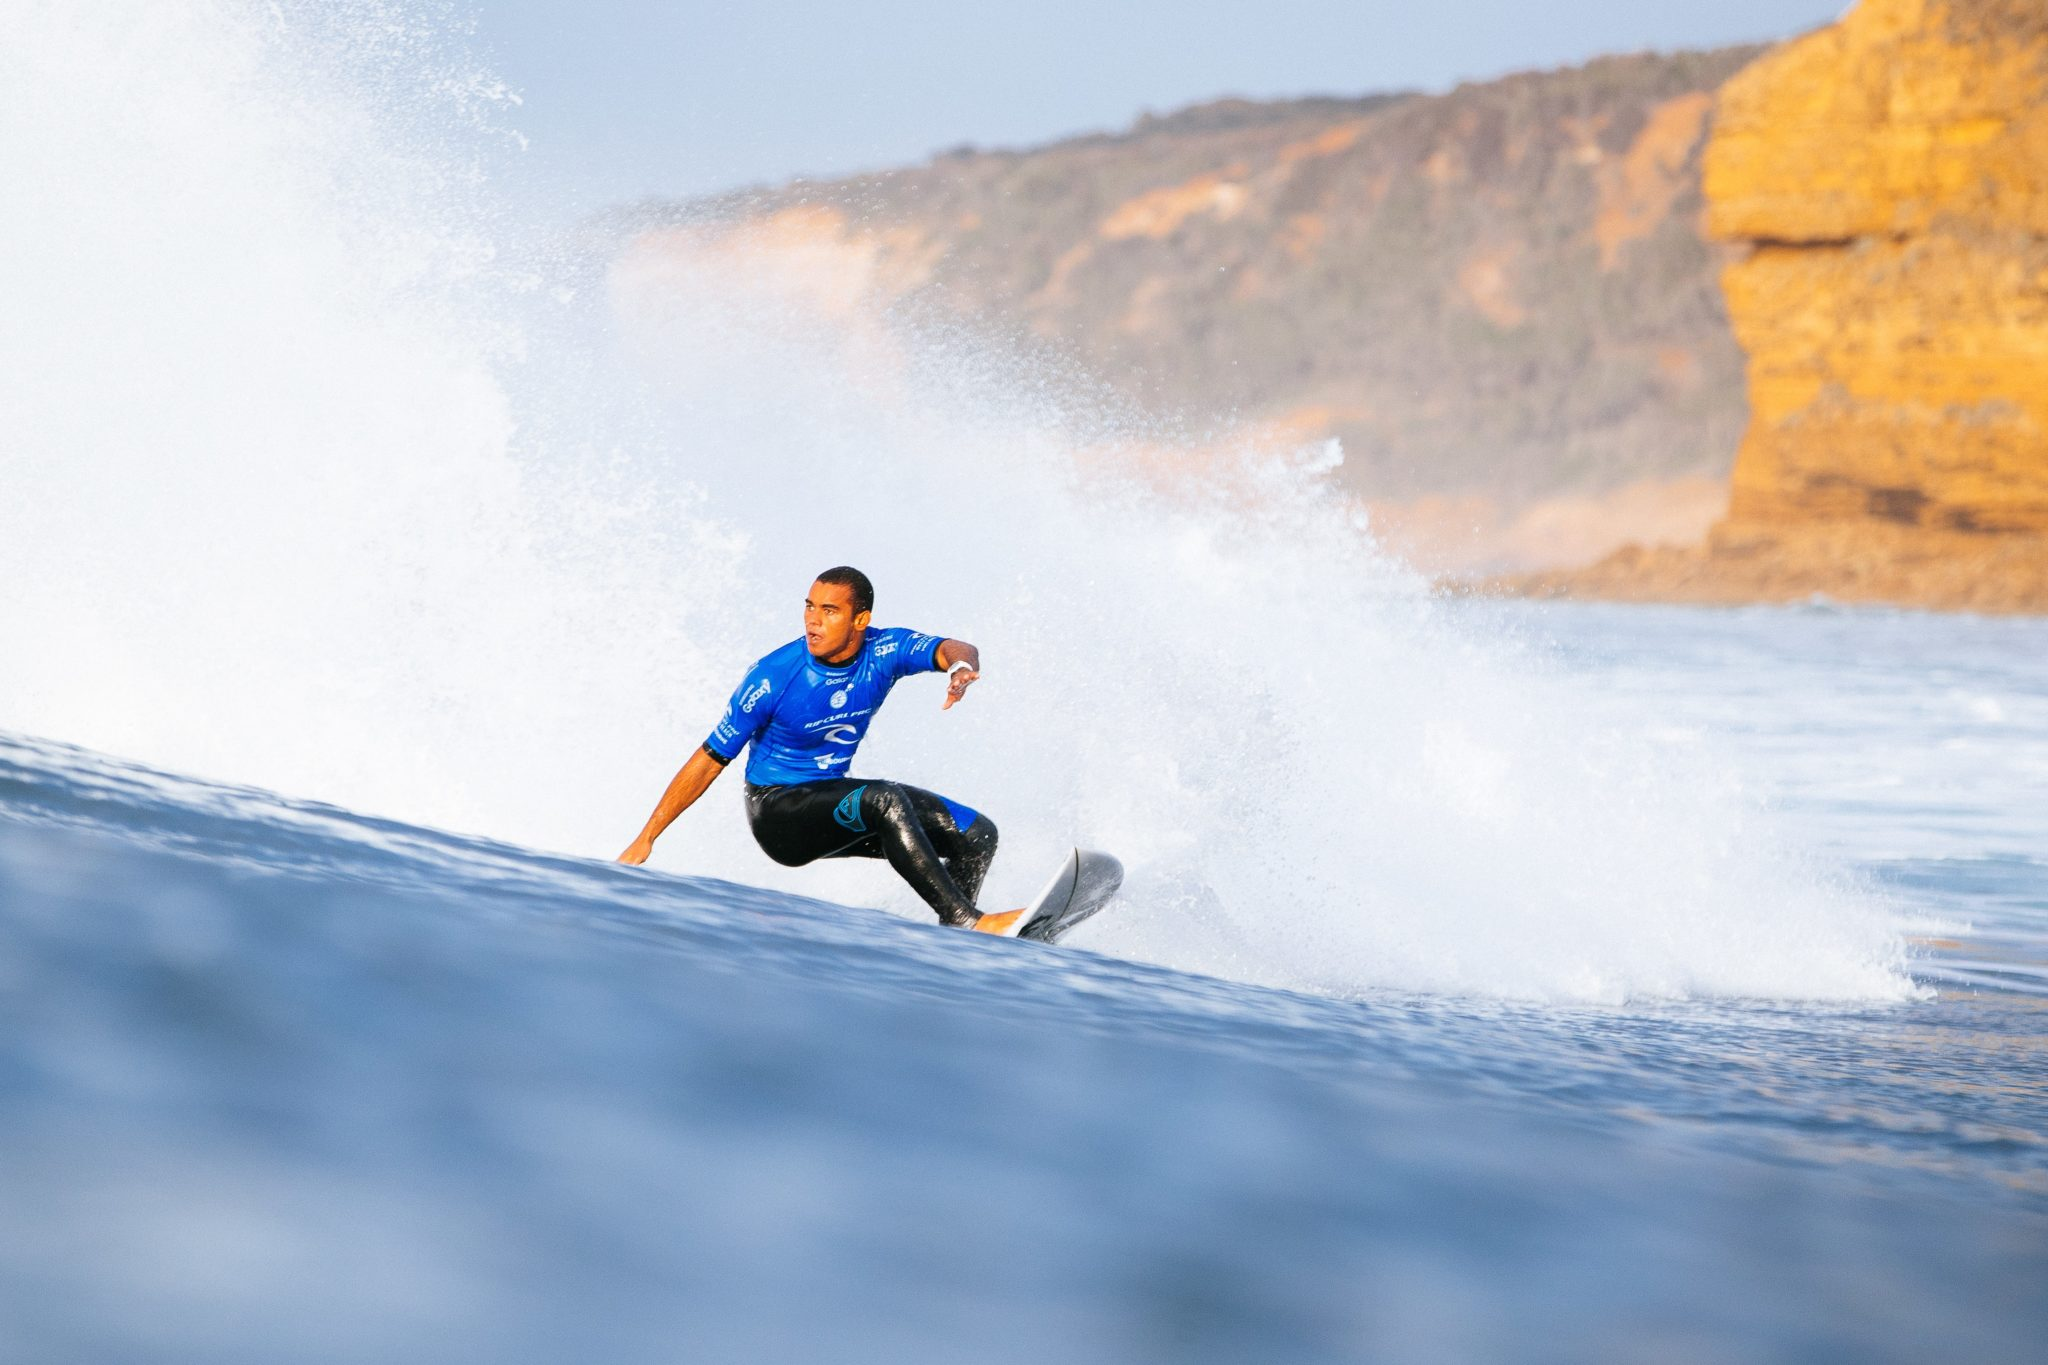 Wiggolly Dantas on the way to winning his Round 4 heat.